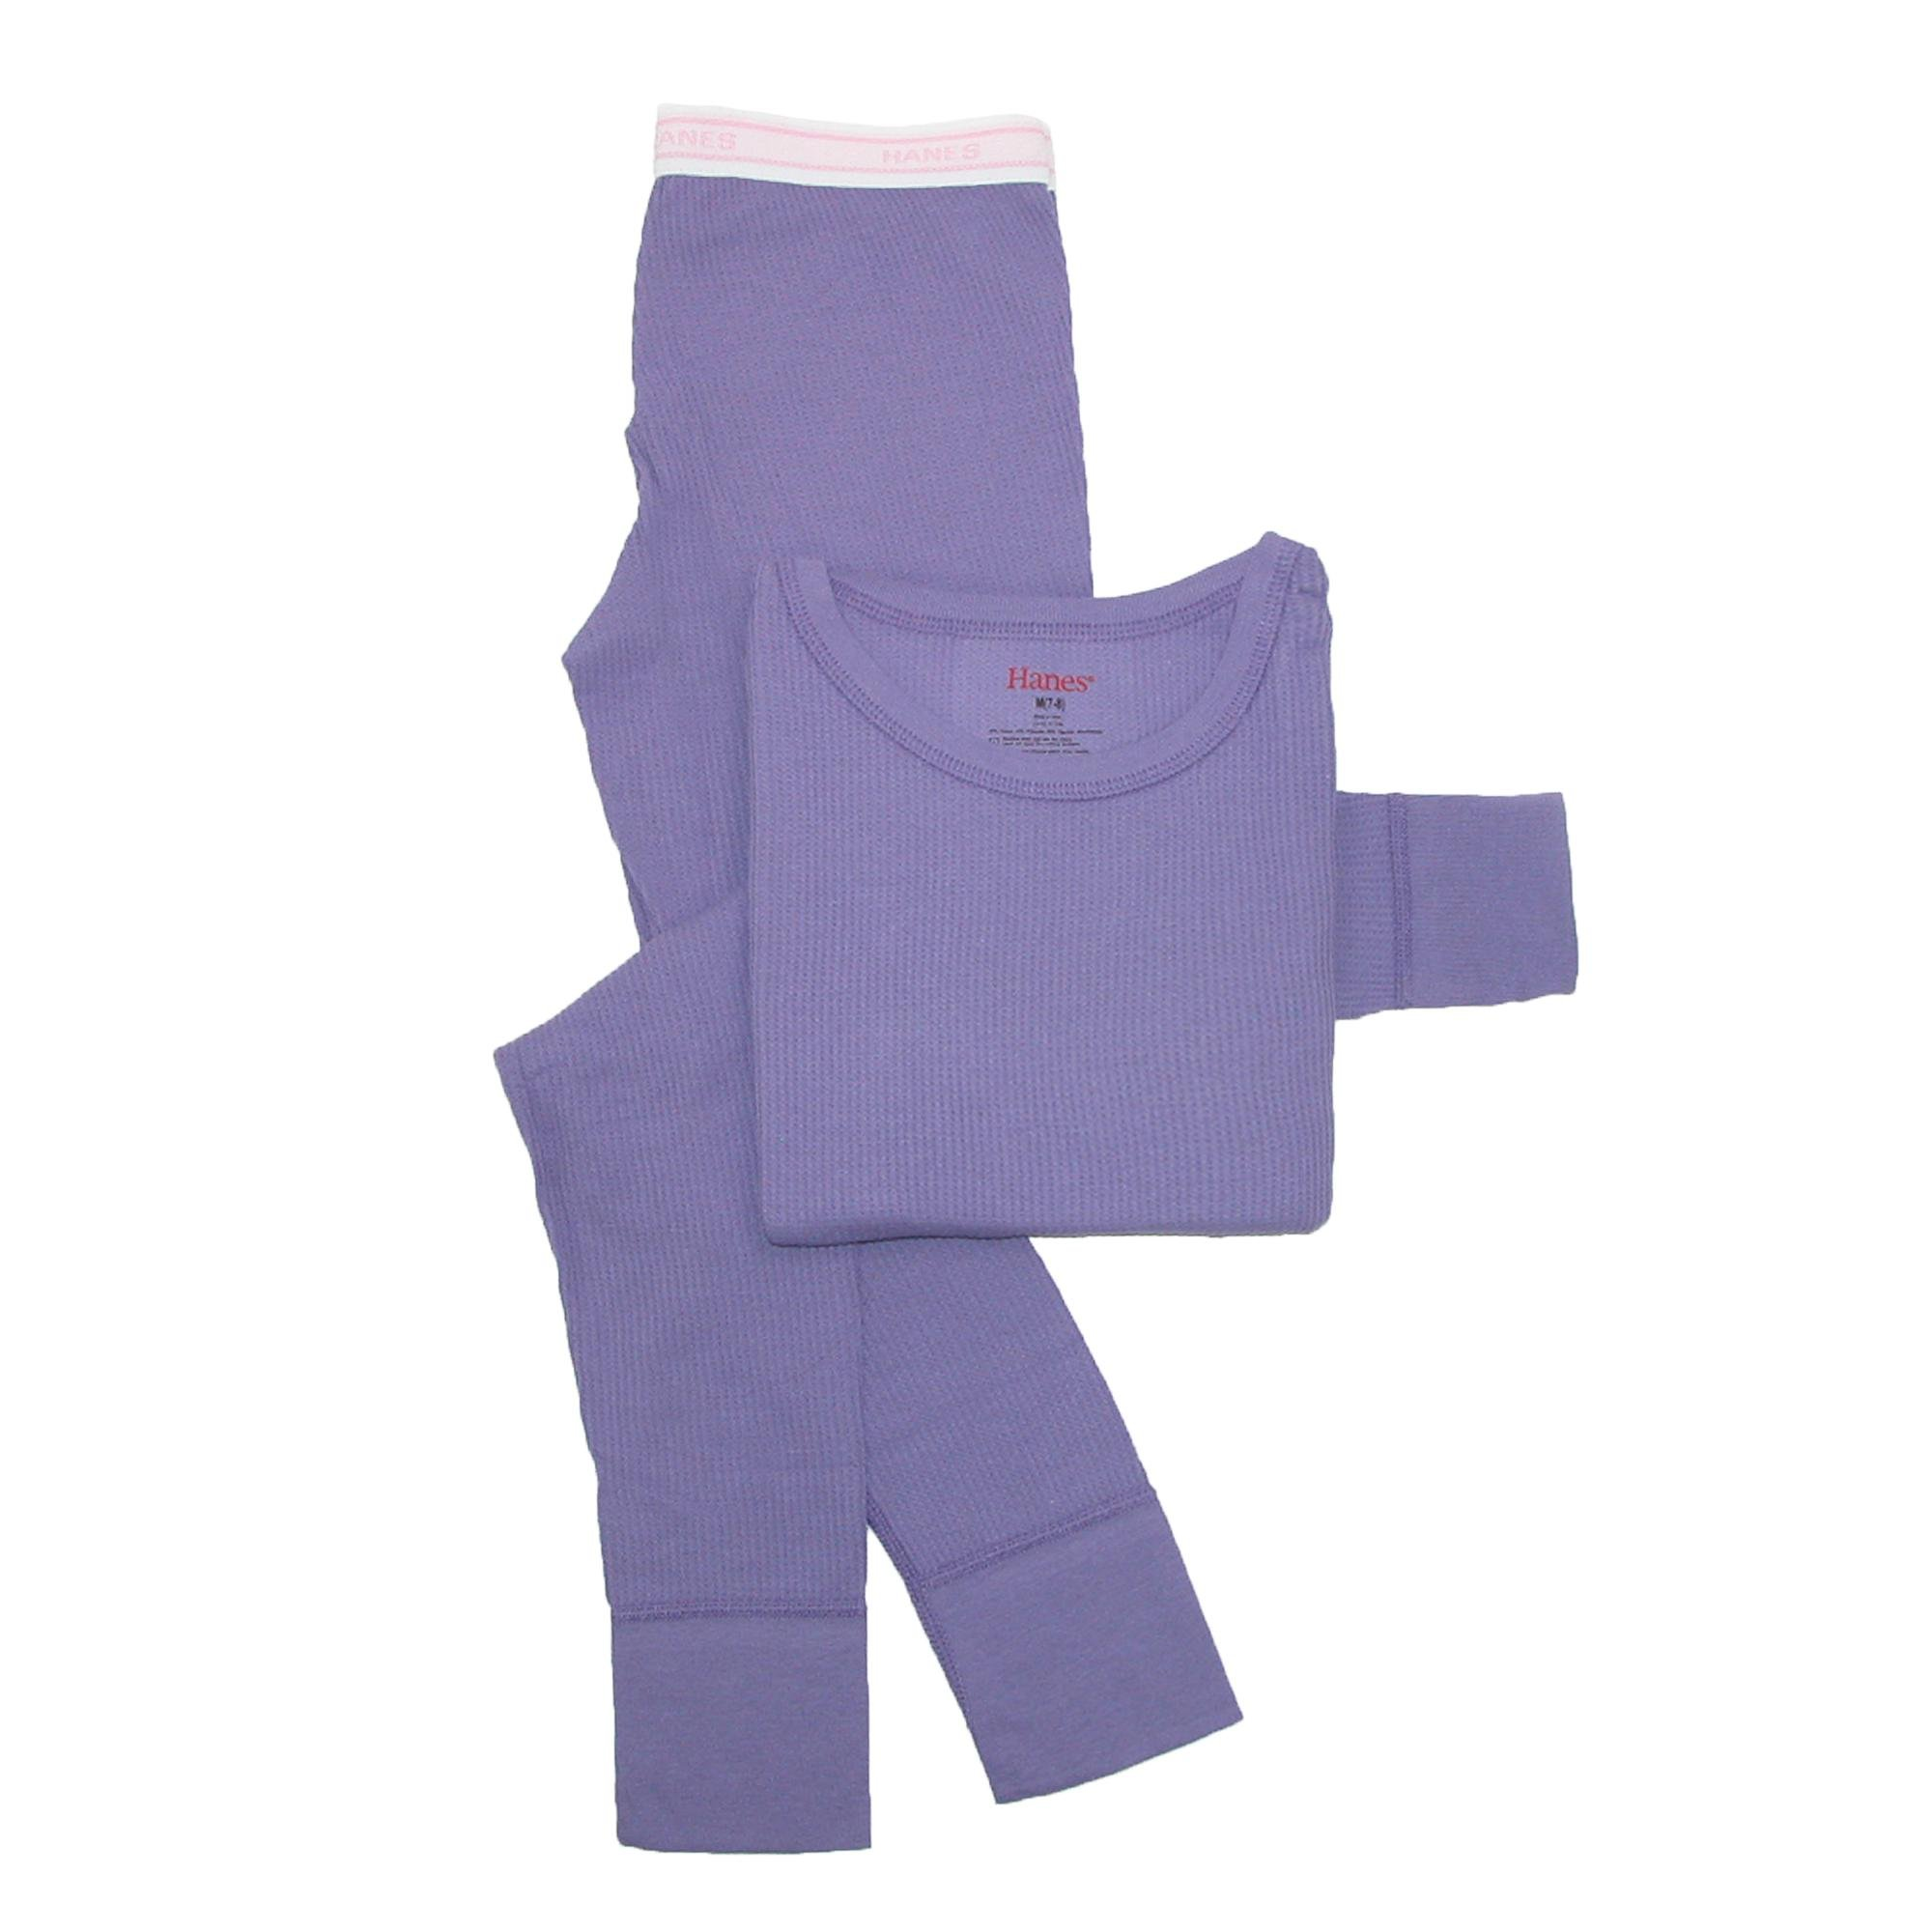 Hanes Little Girls' Thermal Underwear Set, Purple, Small/6-6X